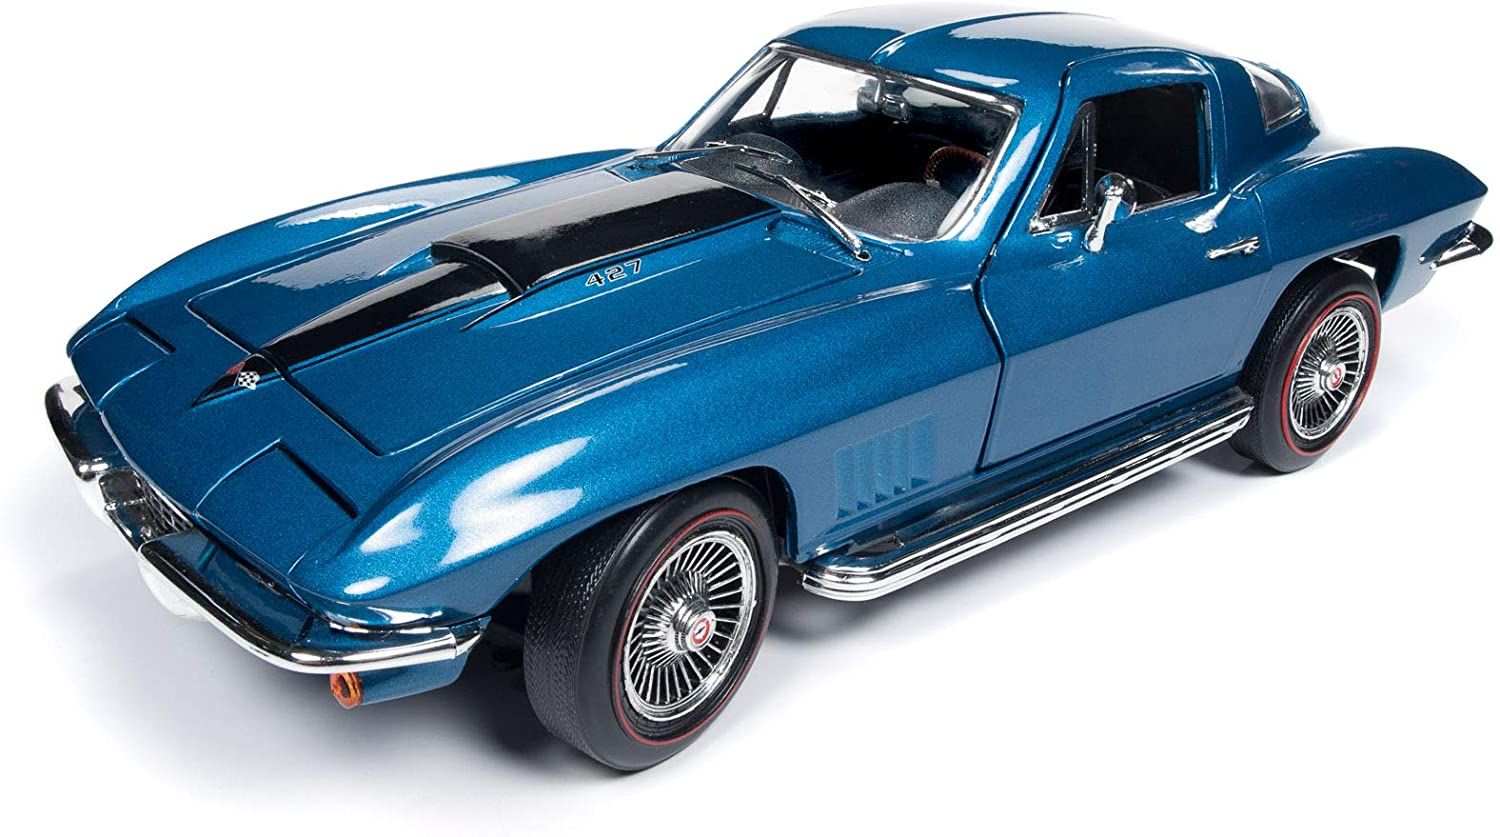 American Muscle – 1967 Chevy Corvette Coupe in Marina Blue - 1/18 Scale Die Cast Collectible Car for Kids and Adults